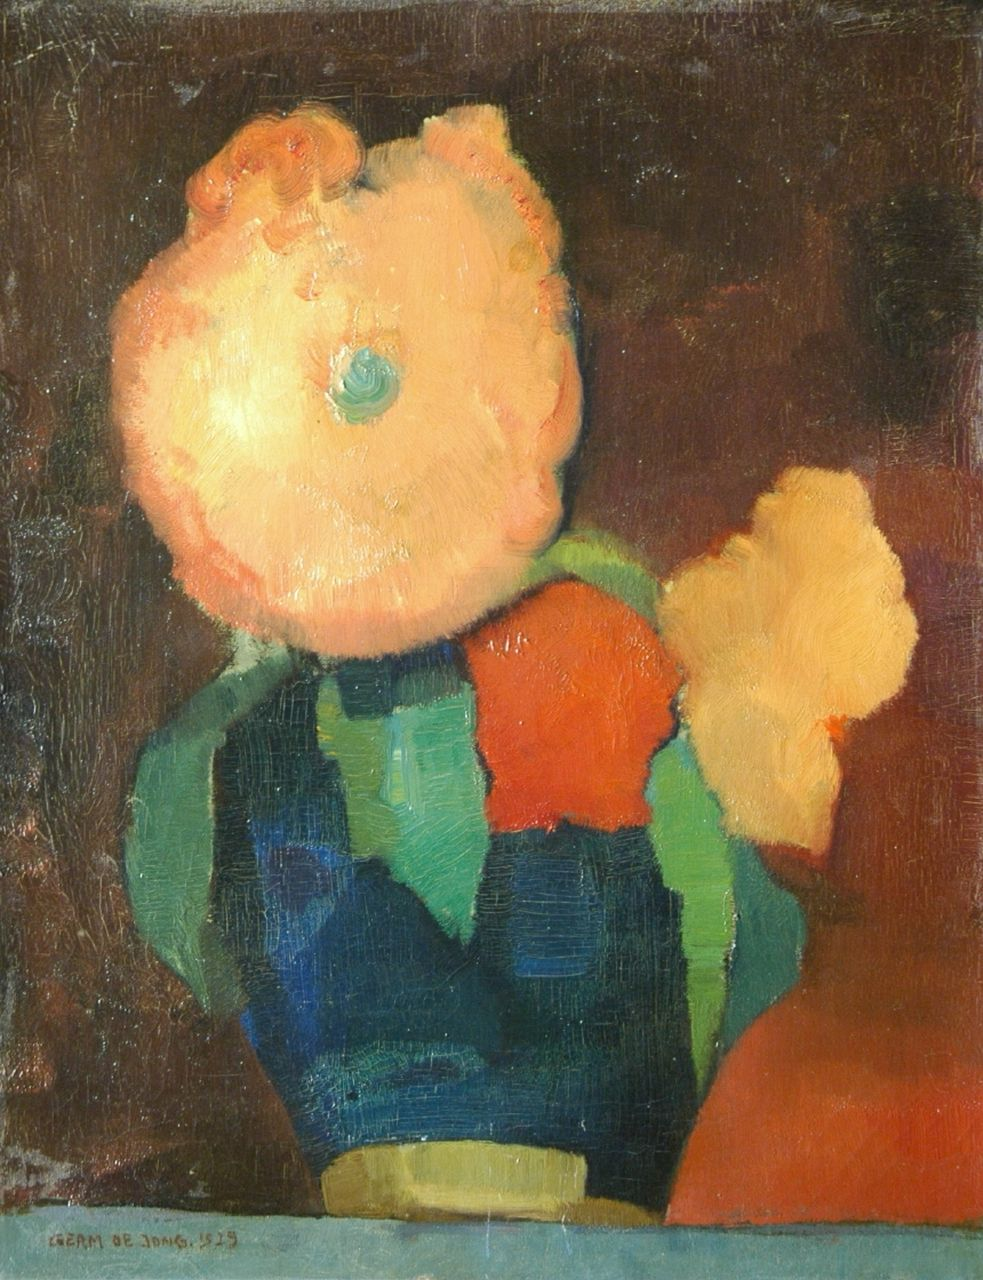 Jong G. de | Gerben 'Germ' de Jong, Flowers in a ginger jar, oil on canvas 45.2 x 35.3 cm, signed l.l. and dated 1929